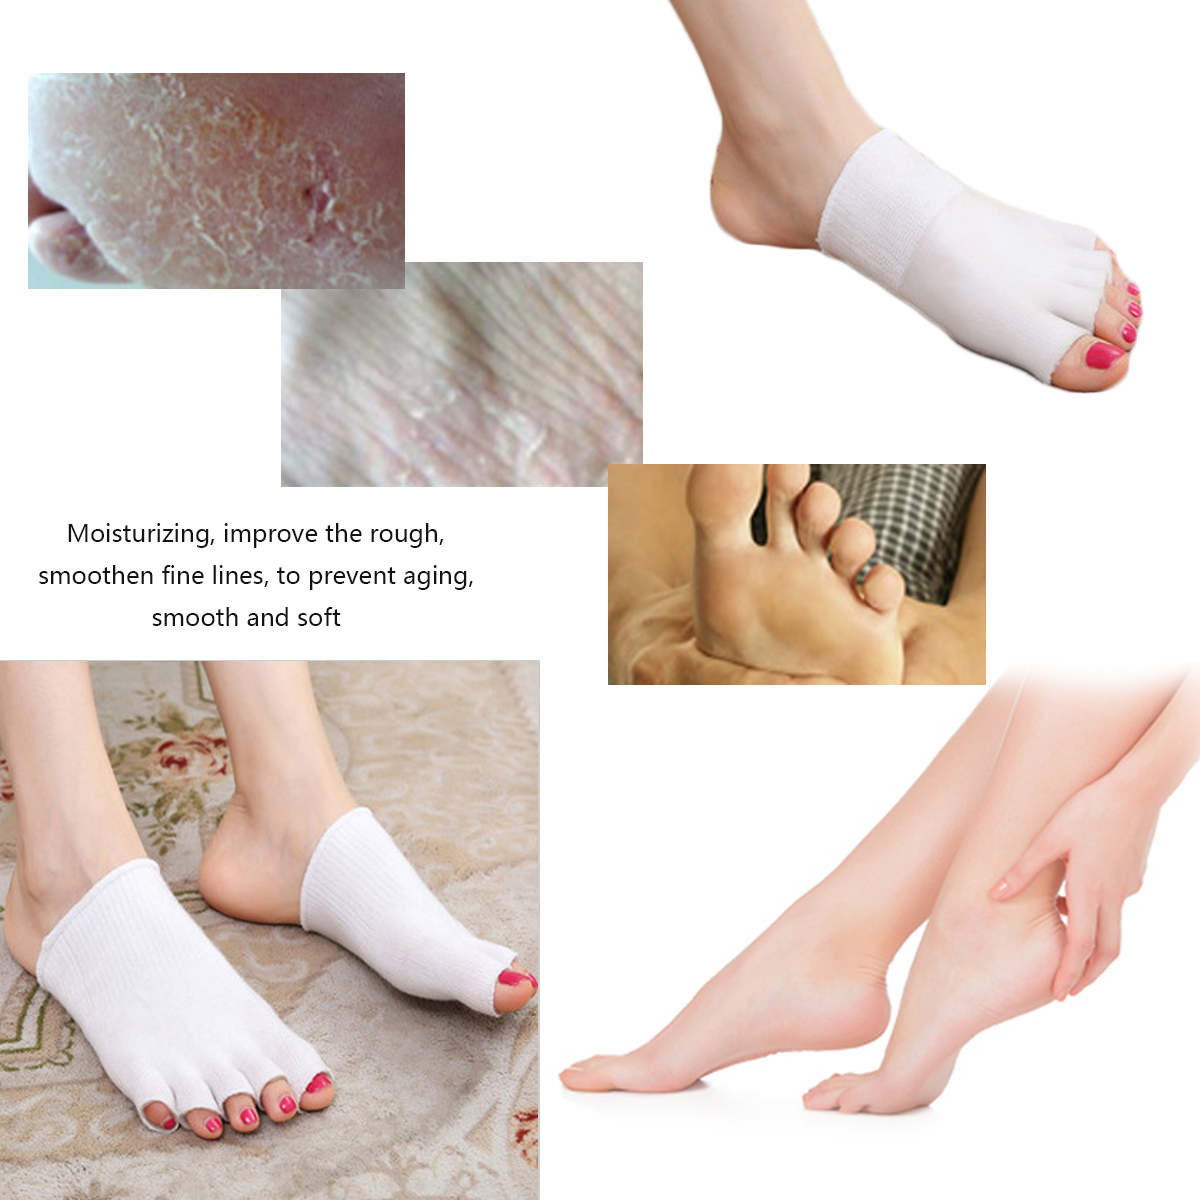 SPA Whitening Moisturizing Gel Toe Socks Chapped Care Tool Feet Cracked Pedicure Skin Protector